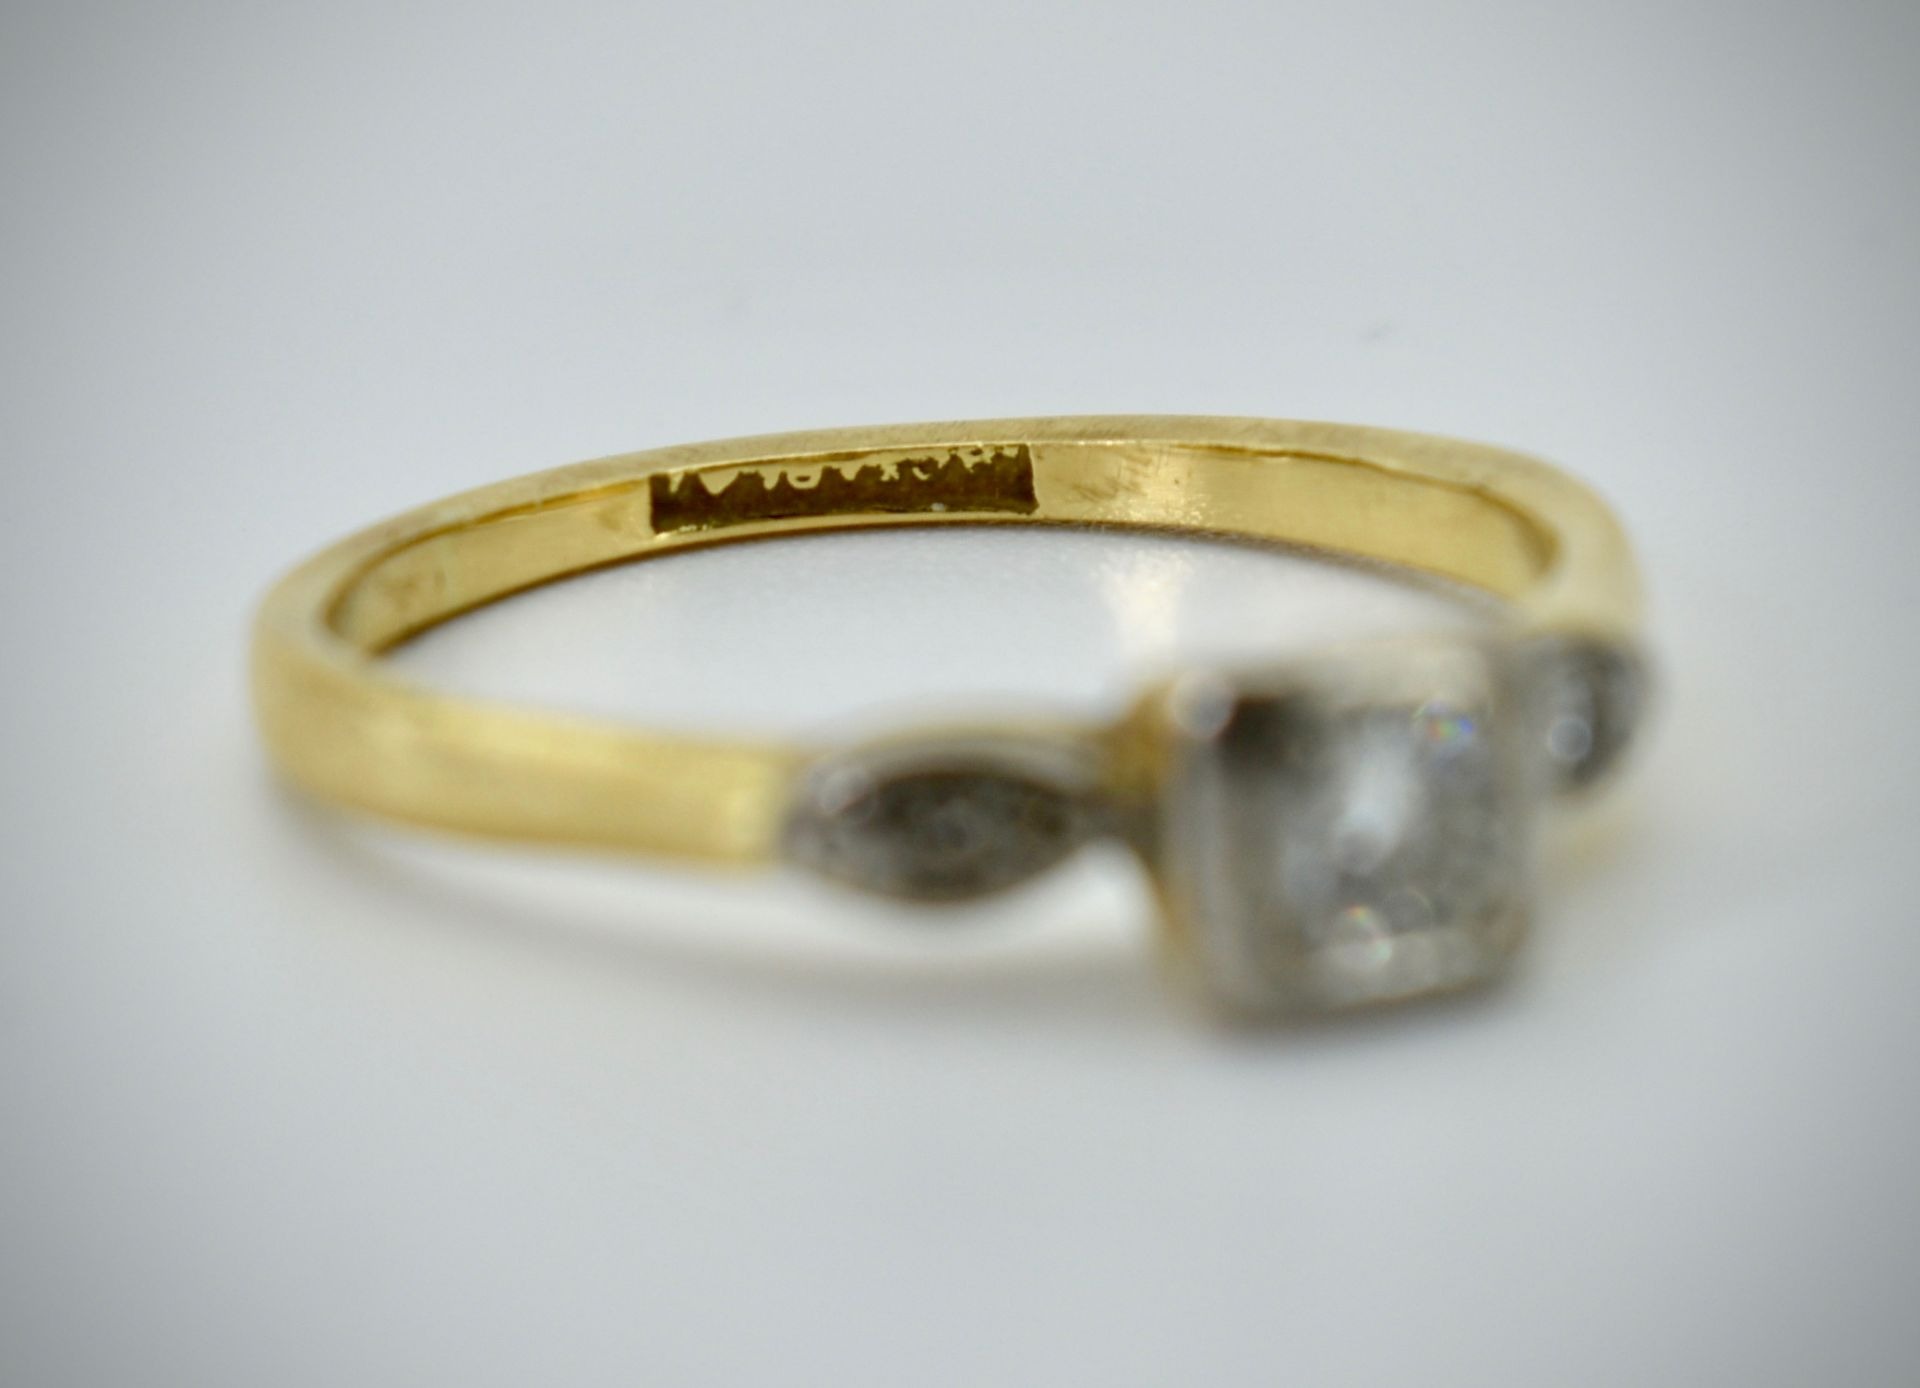 18ct Gold Platinum & Diamond Three Stone Ring - Image 4 of 4